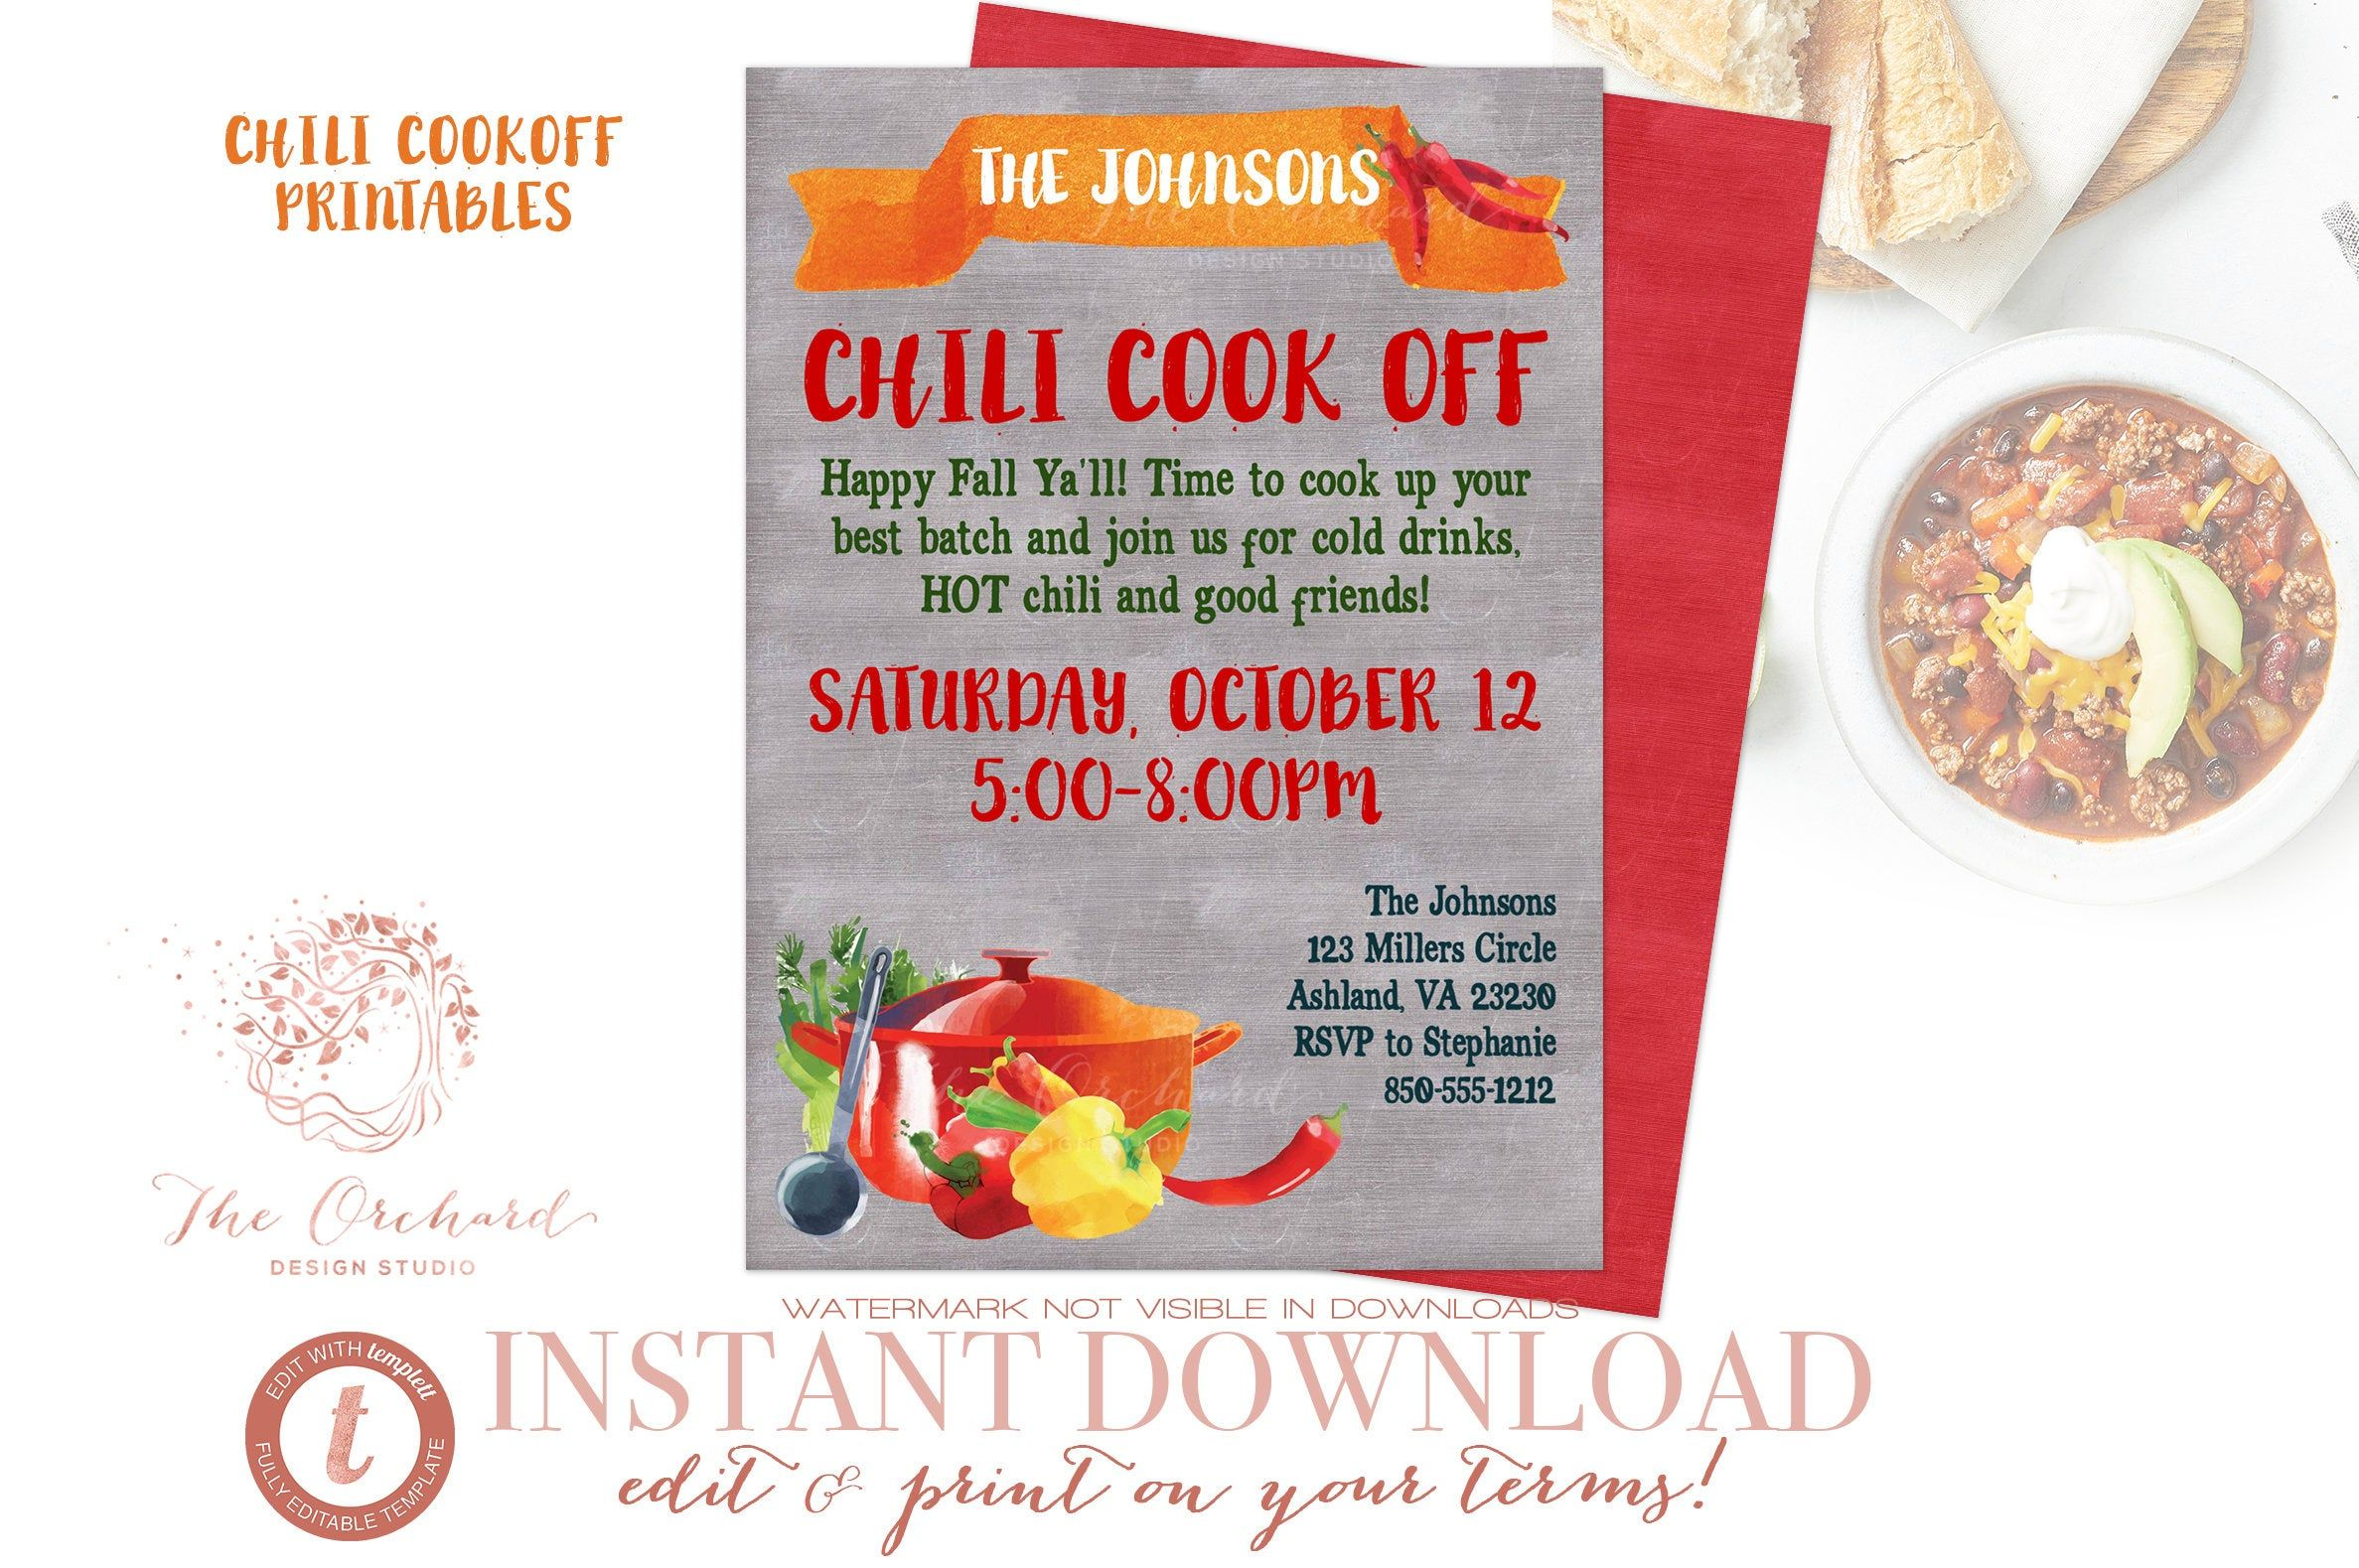 Chili Cook Off Invitation And Flyer Instant Editable Download Chili Cookoff Fall Chalkboard Template Church School Chili Cook Off Cook Off Fall Chalkboard